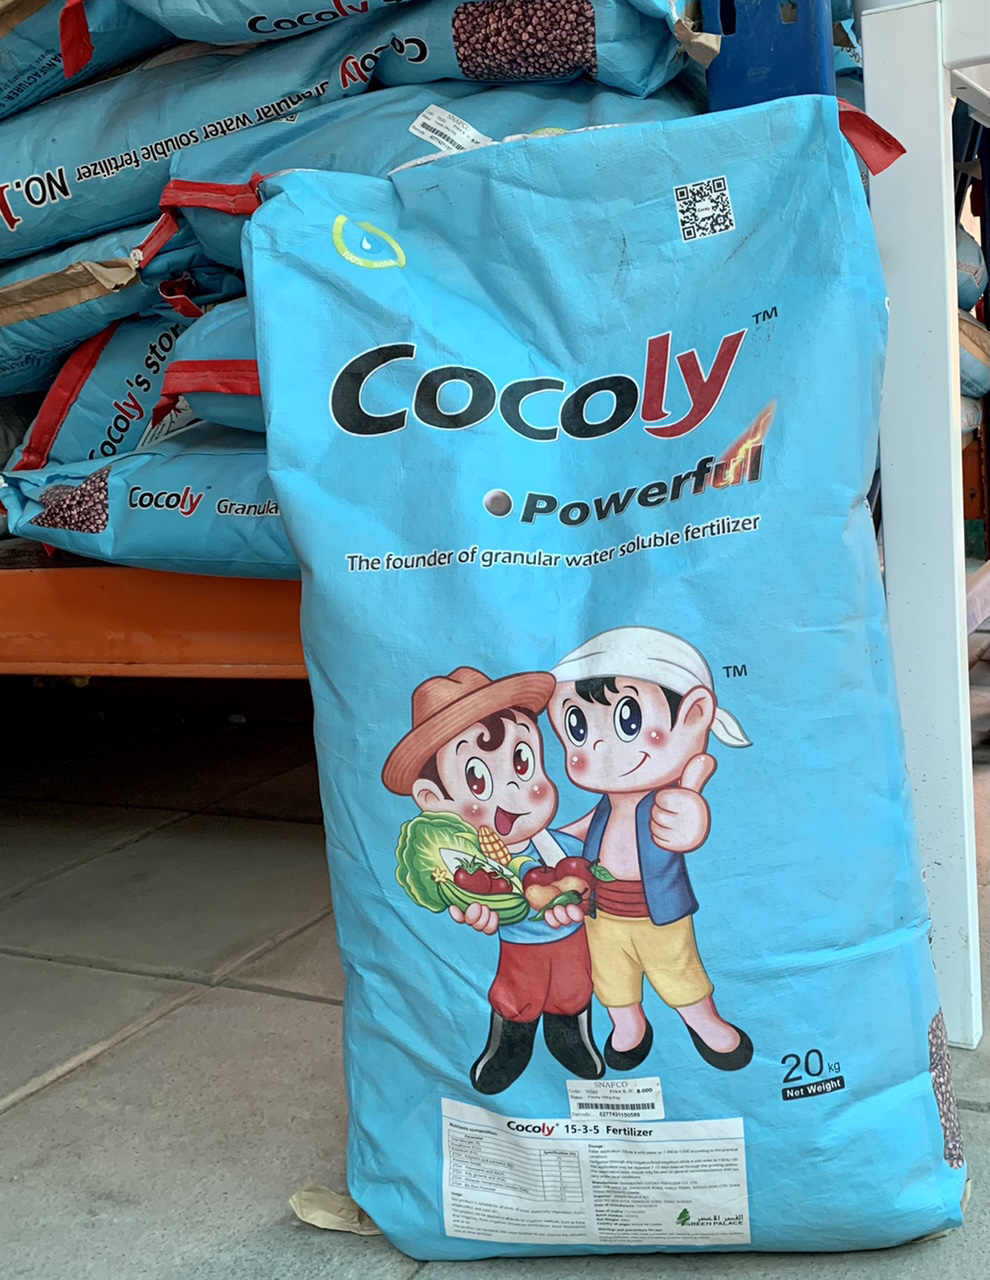 Cocoly Fertilizer - 20 Kg Soil Fertilizer Pesticide